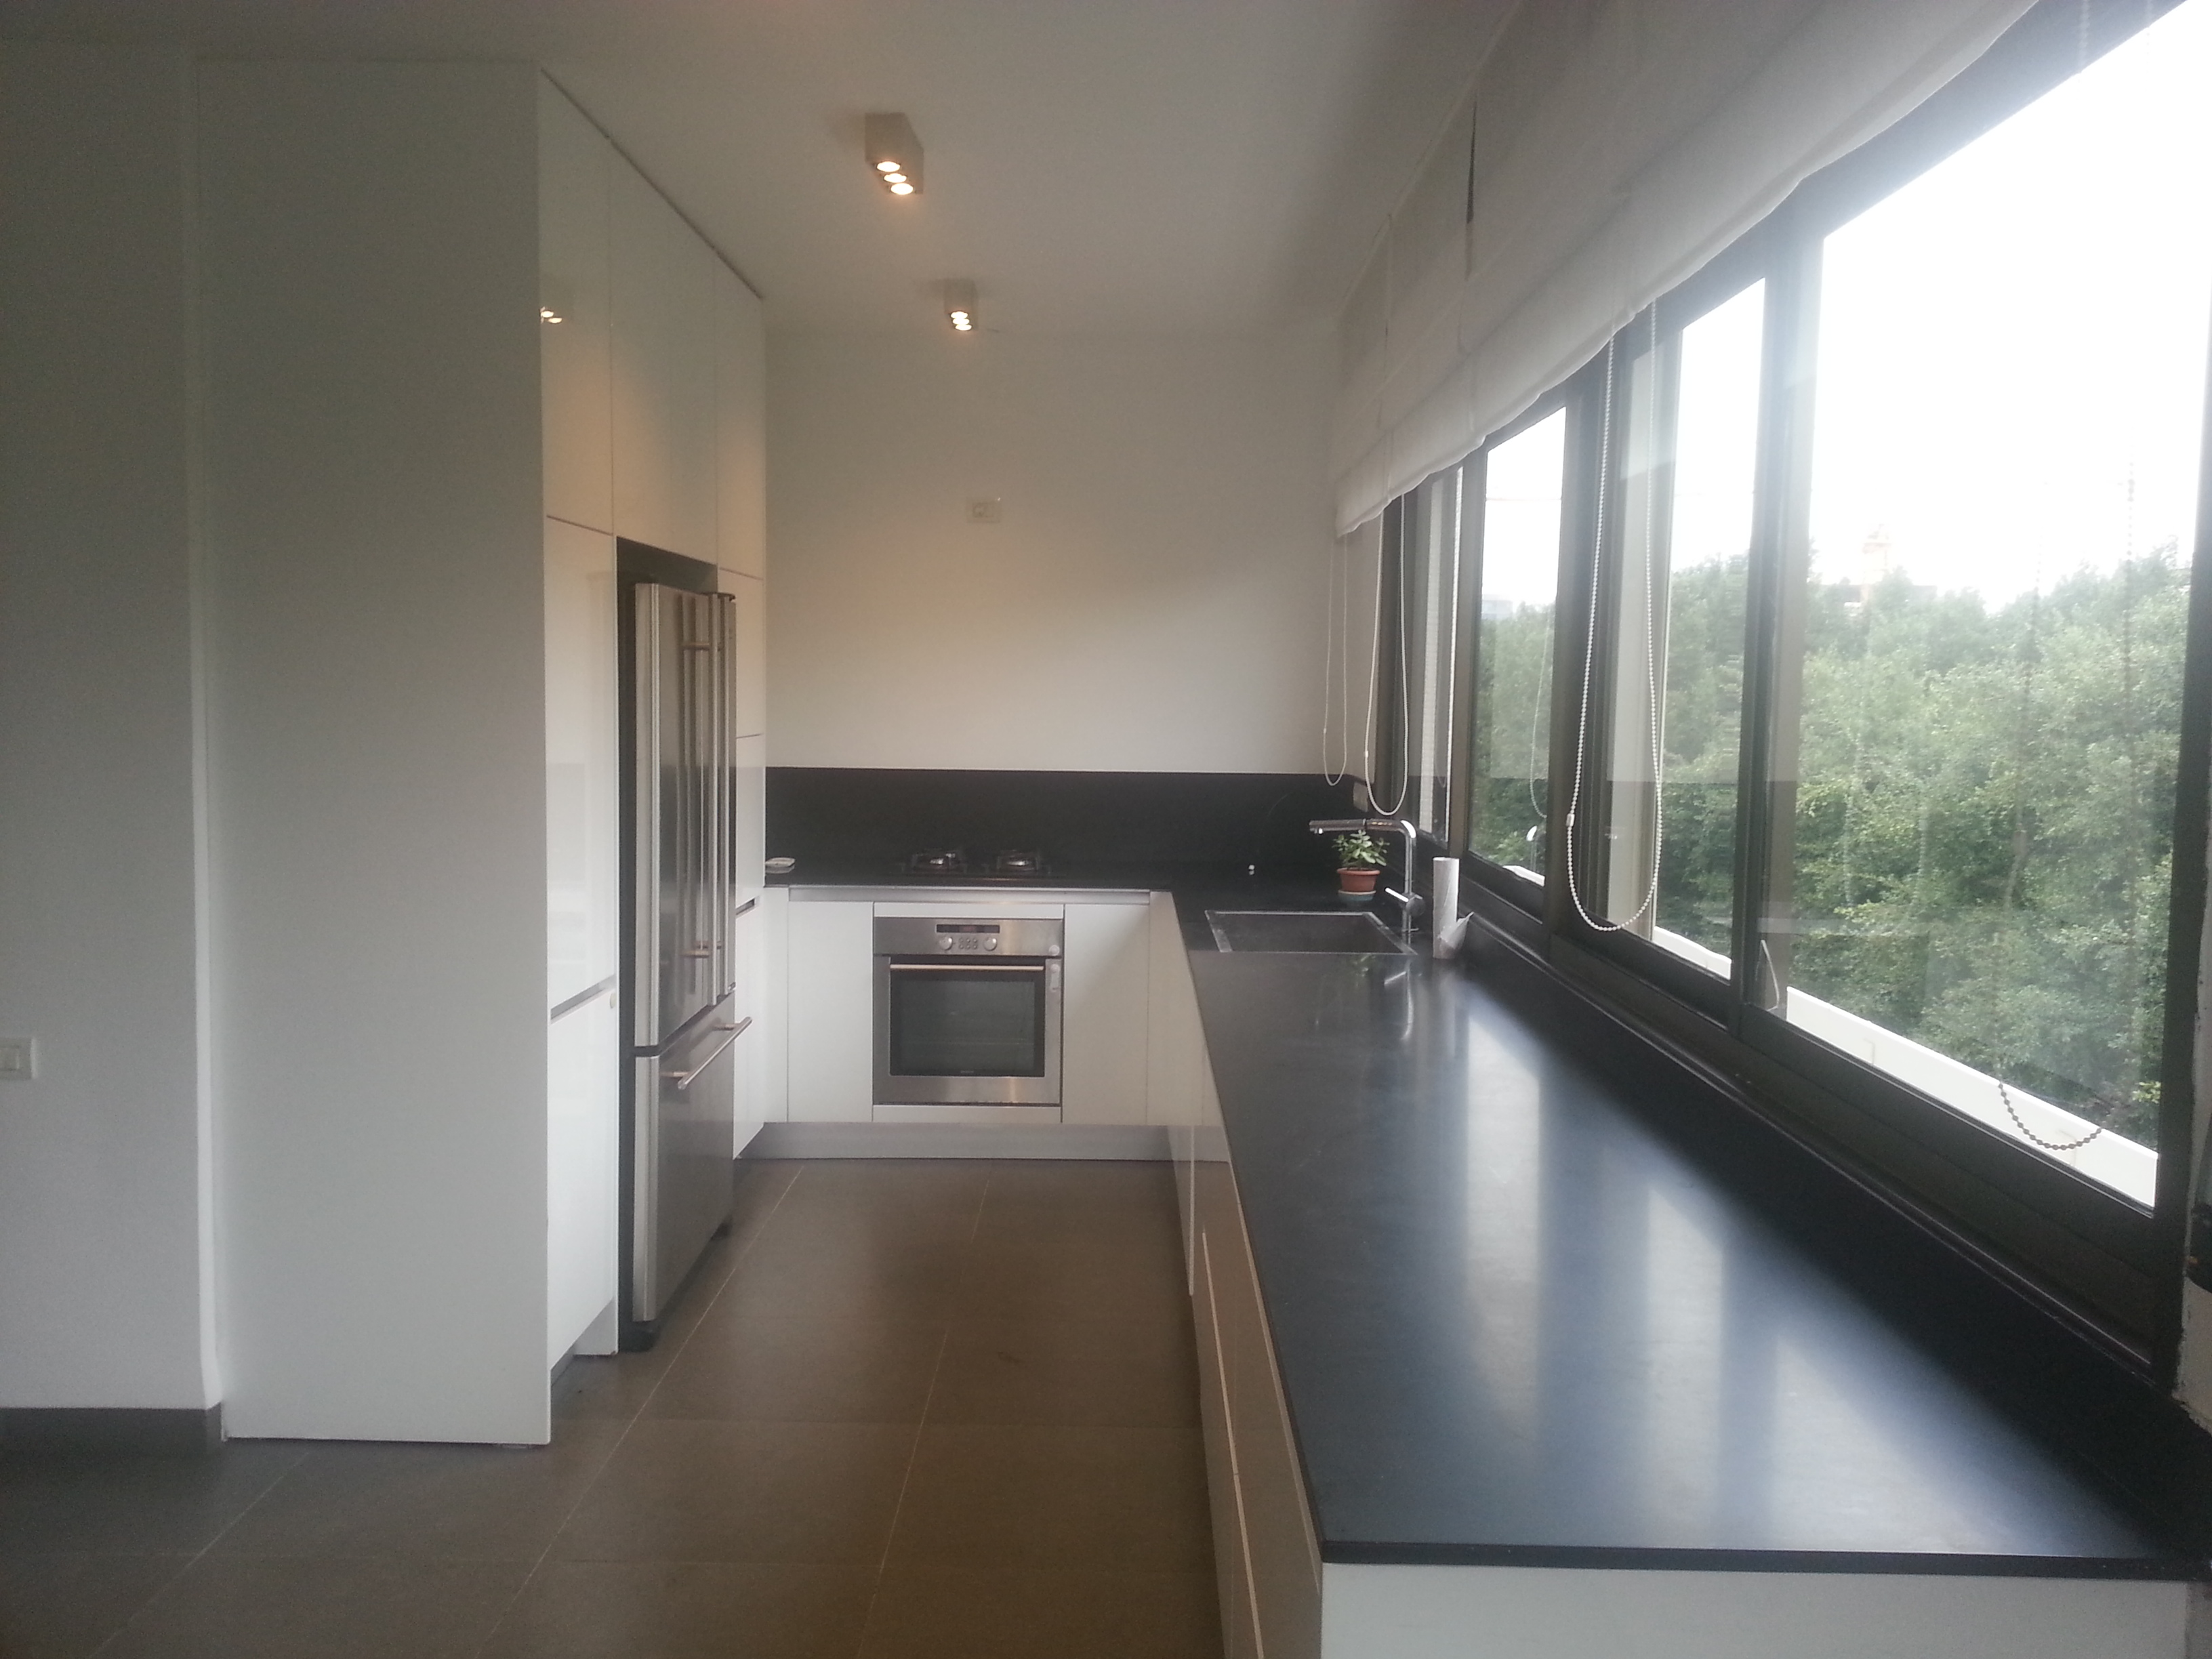 3BR Penthouse for Rent on Sderot Chen in Tel Aviv's City Center